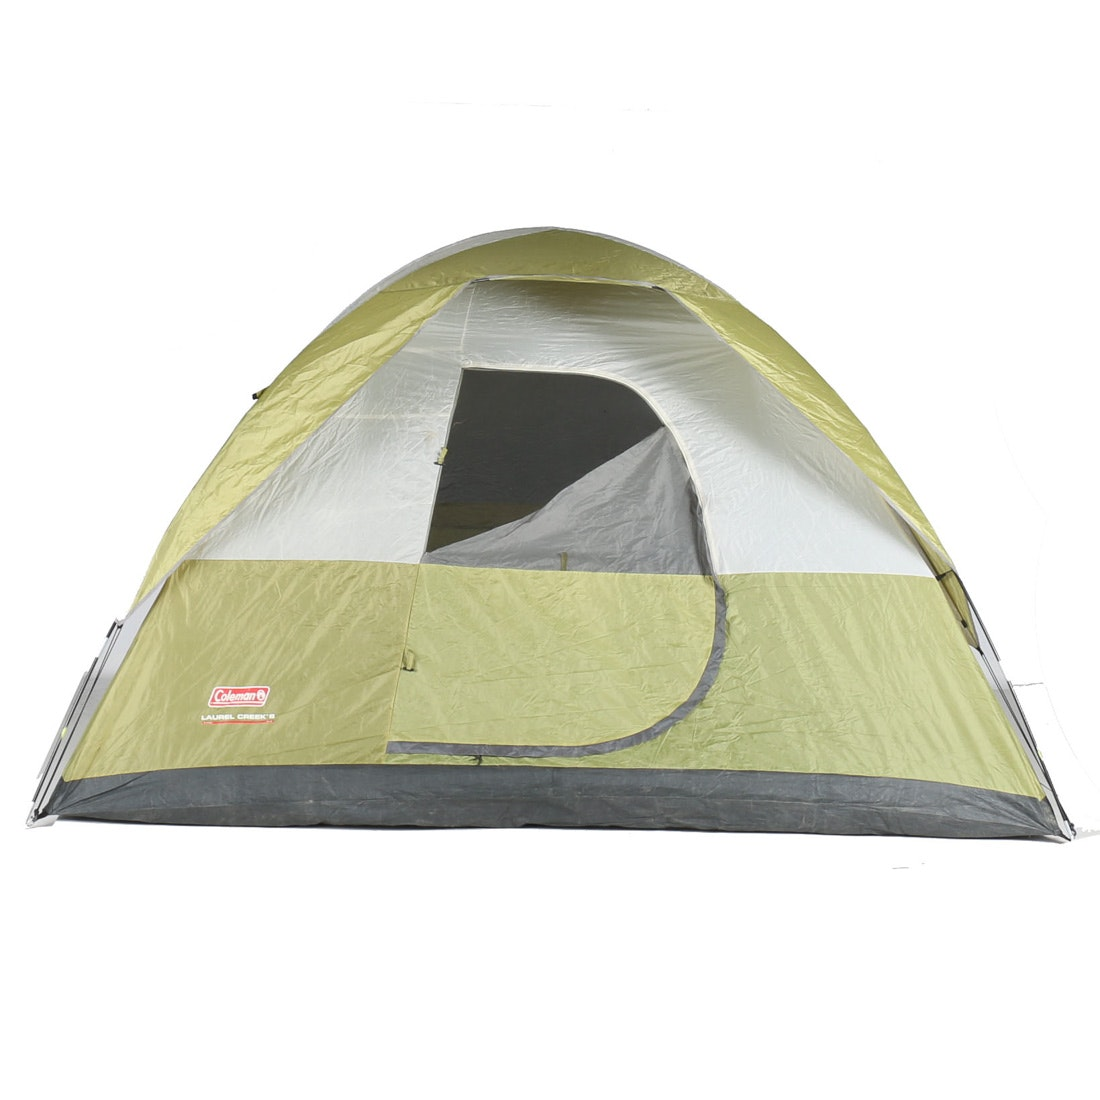 Coleman Laurel Creek 6-Person Tent ...  sc 1 st  EBTH.com : coleman 6 man dome tent - memphite.com